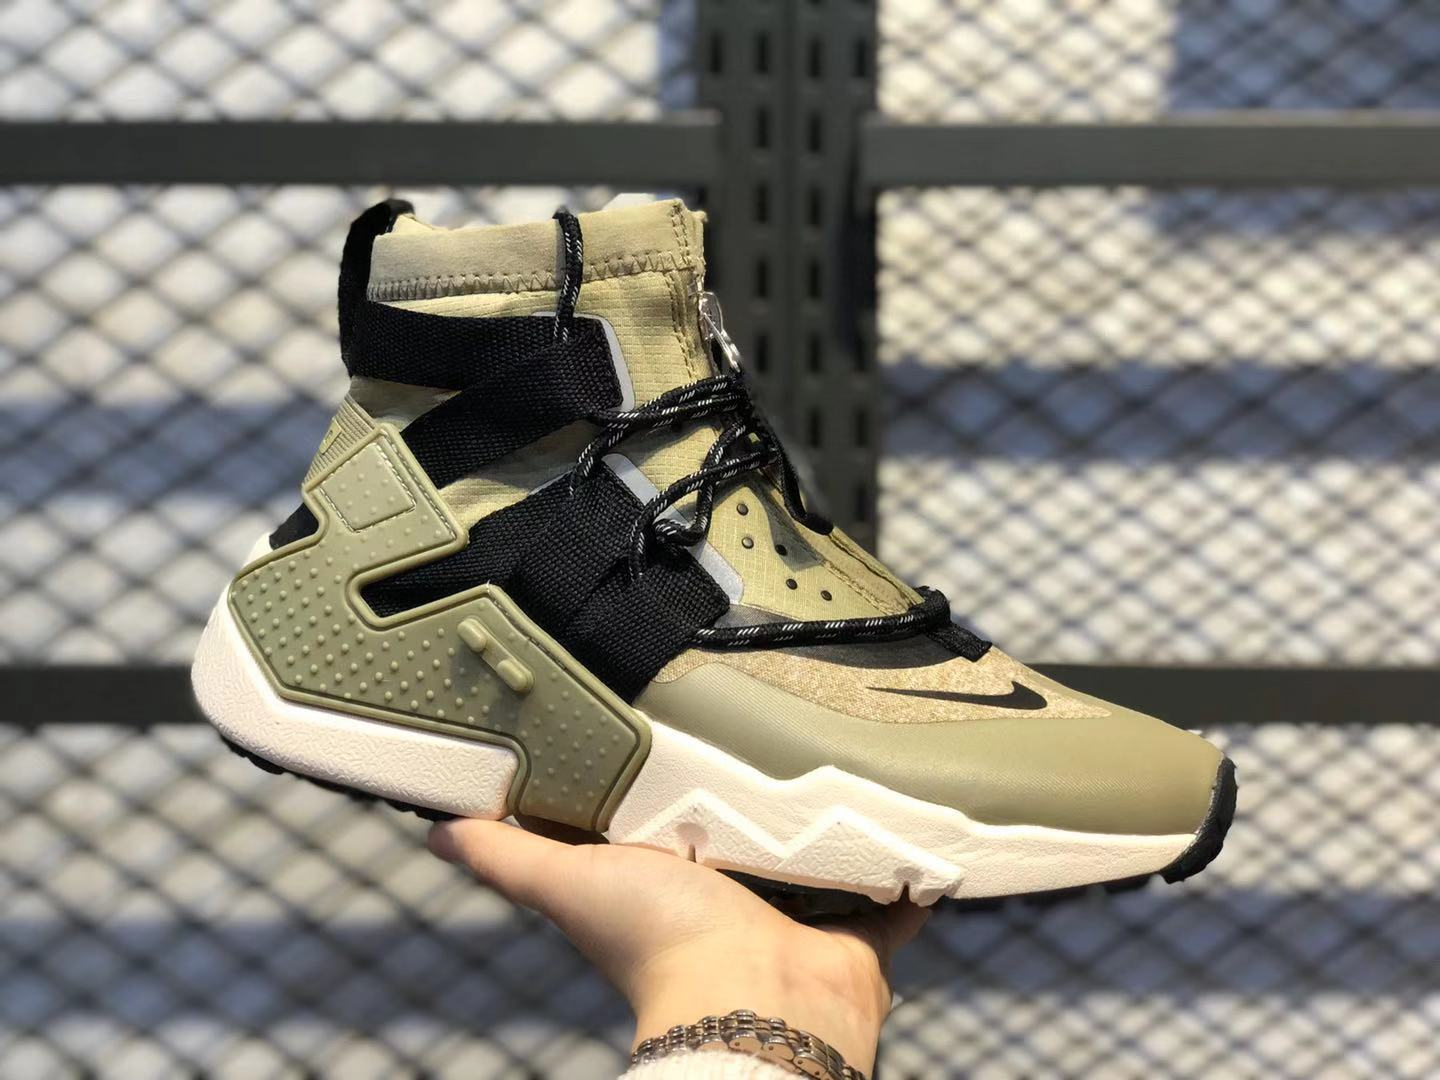 Nike Air Huarache Gripp Olive Green/Black Sport Shoes On Sale AO1730-200